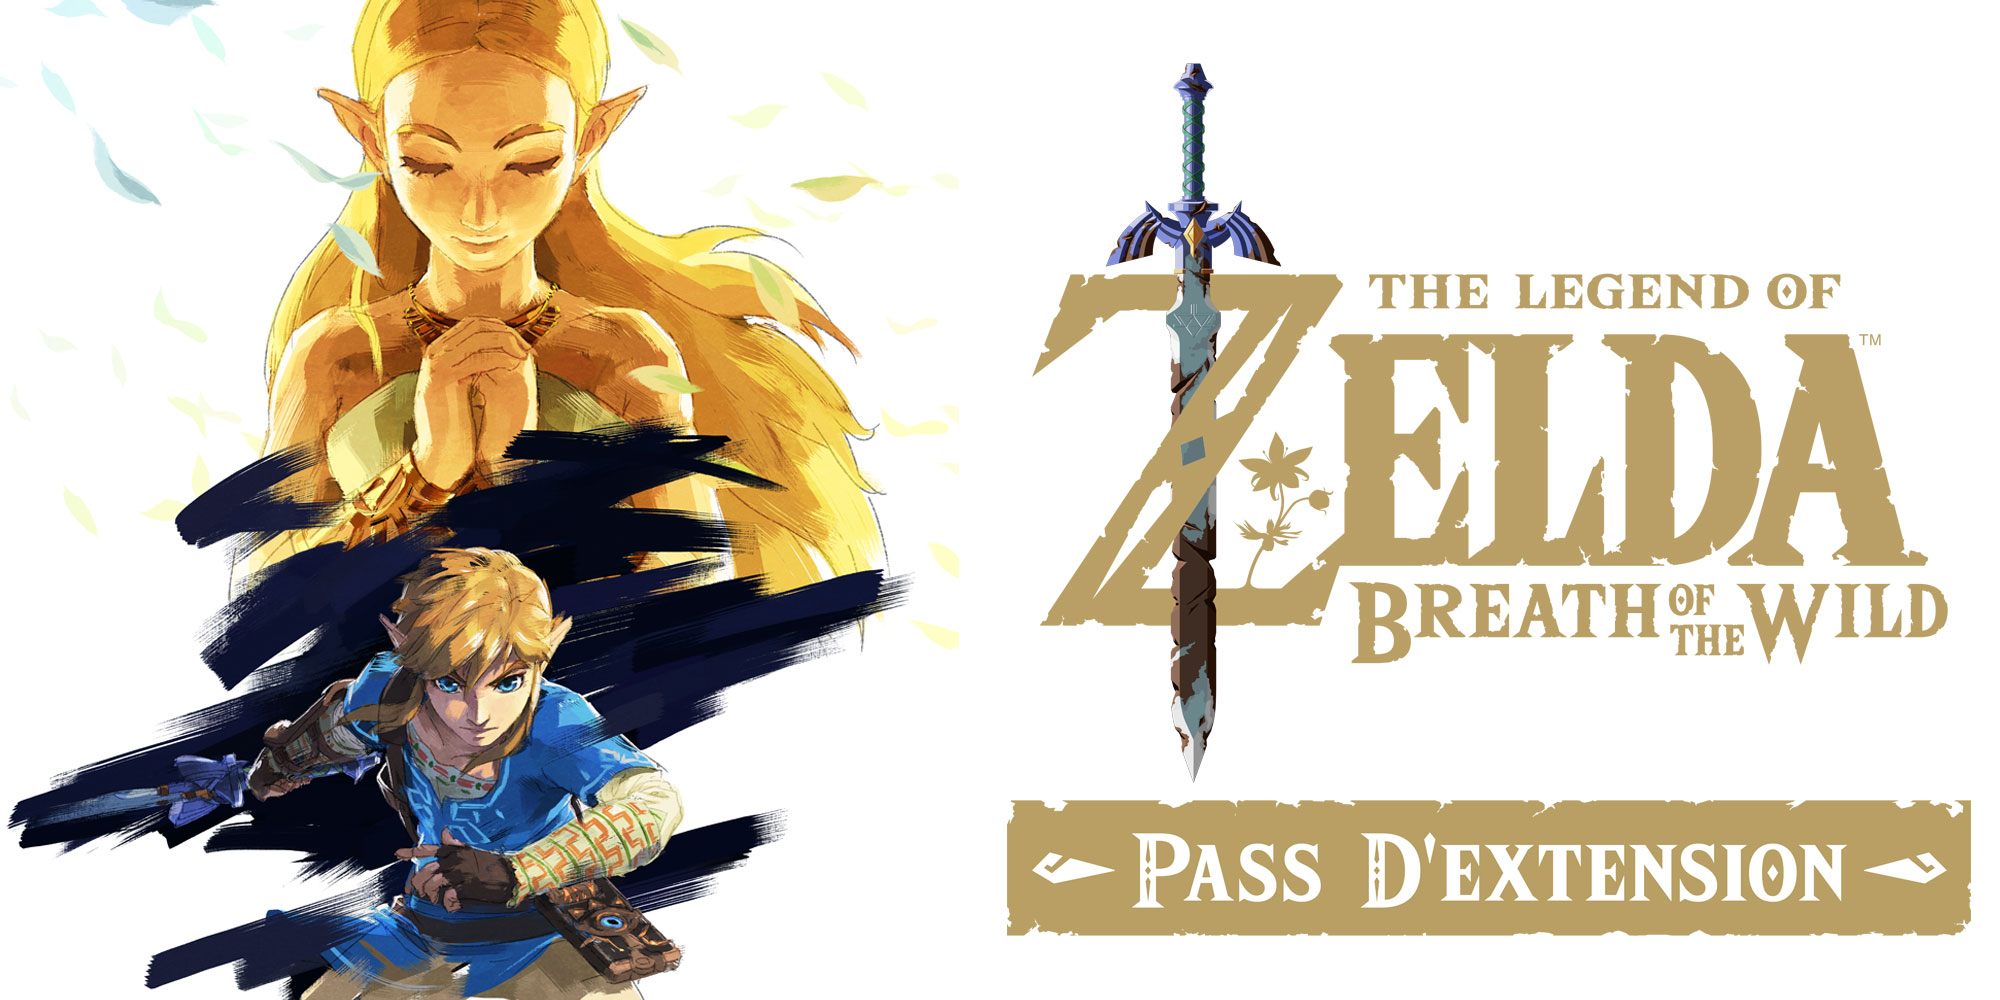 Zelda the pass Extension